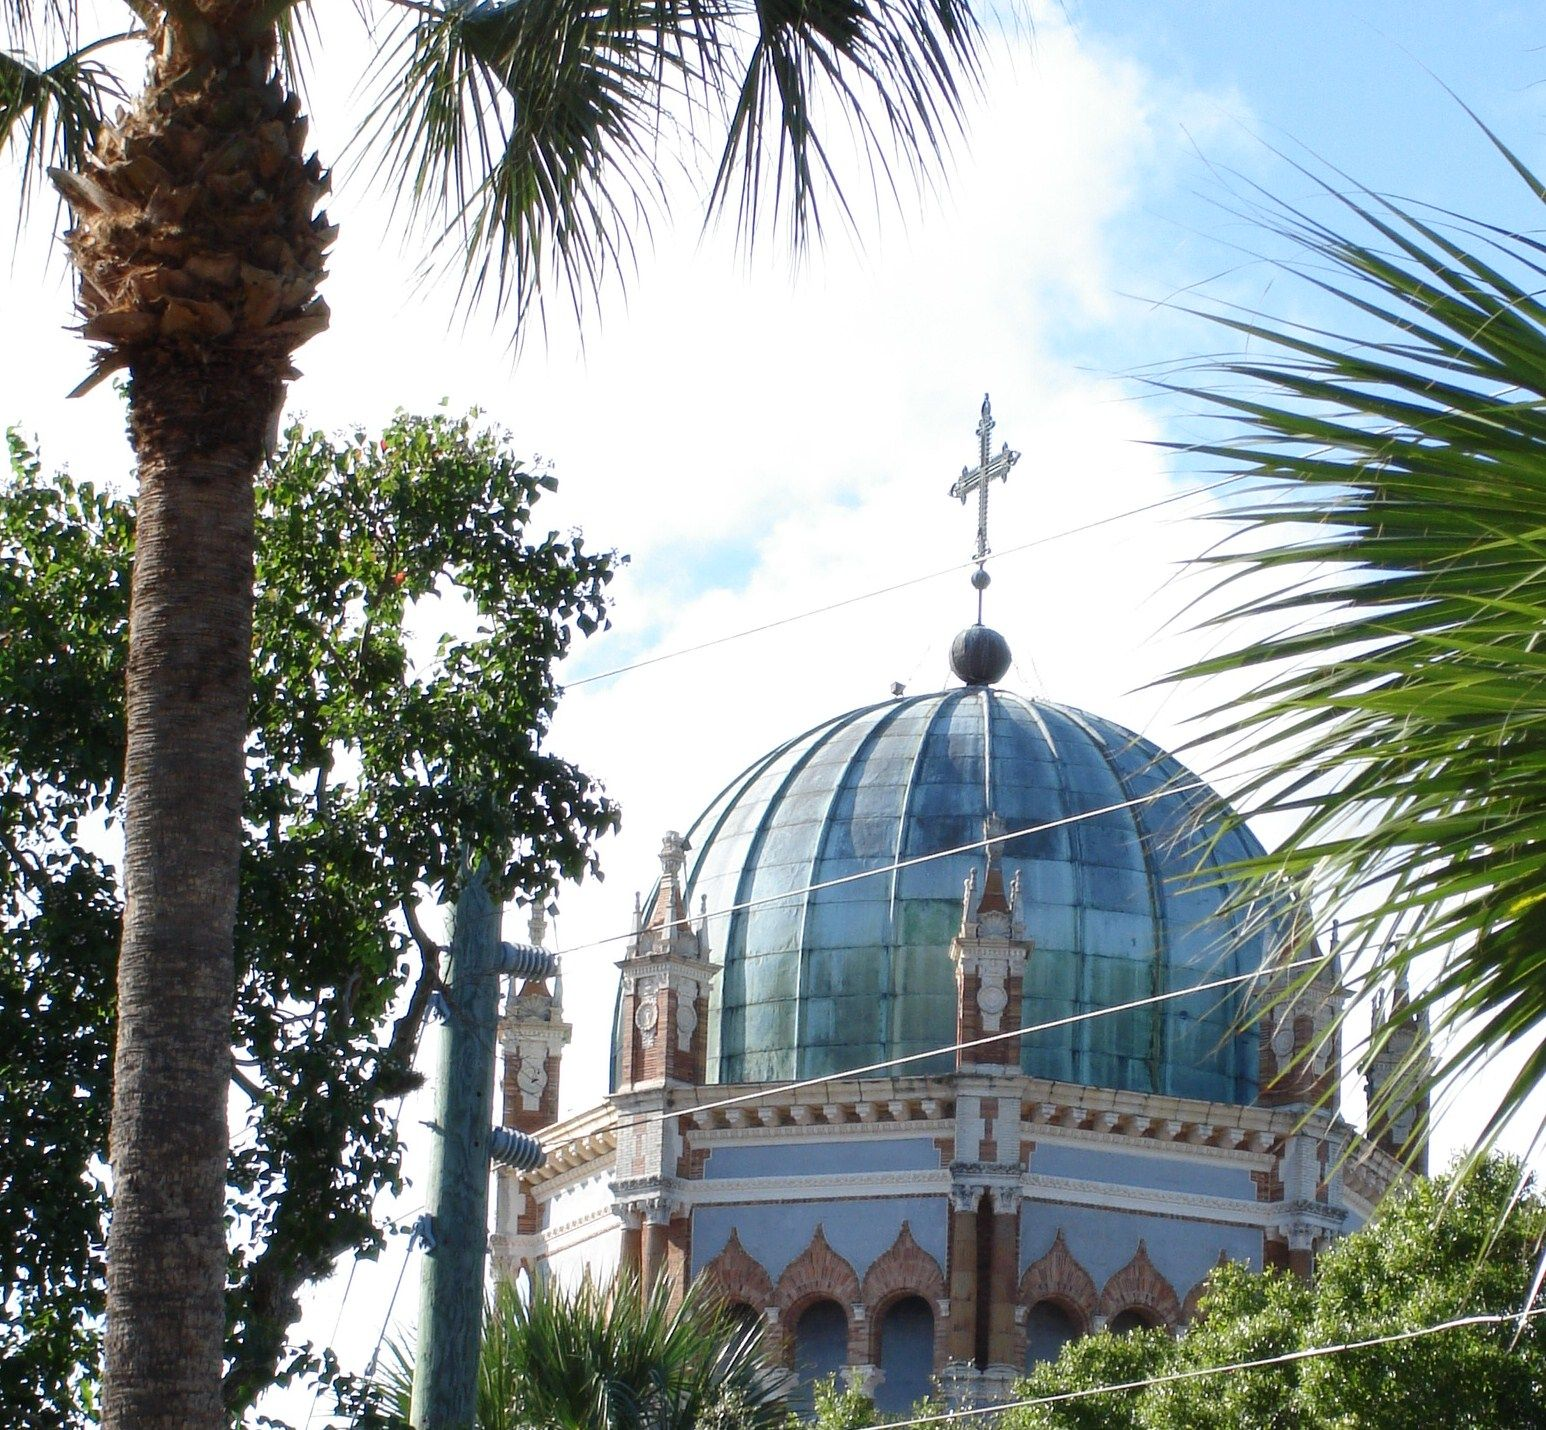 Can you imagine how many hours and the manpower it took to build this fabulous church in St Augustine, FL